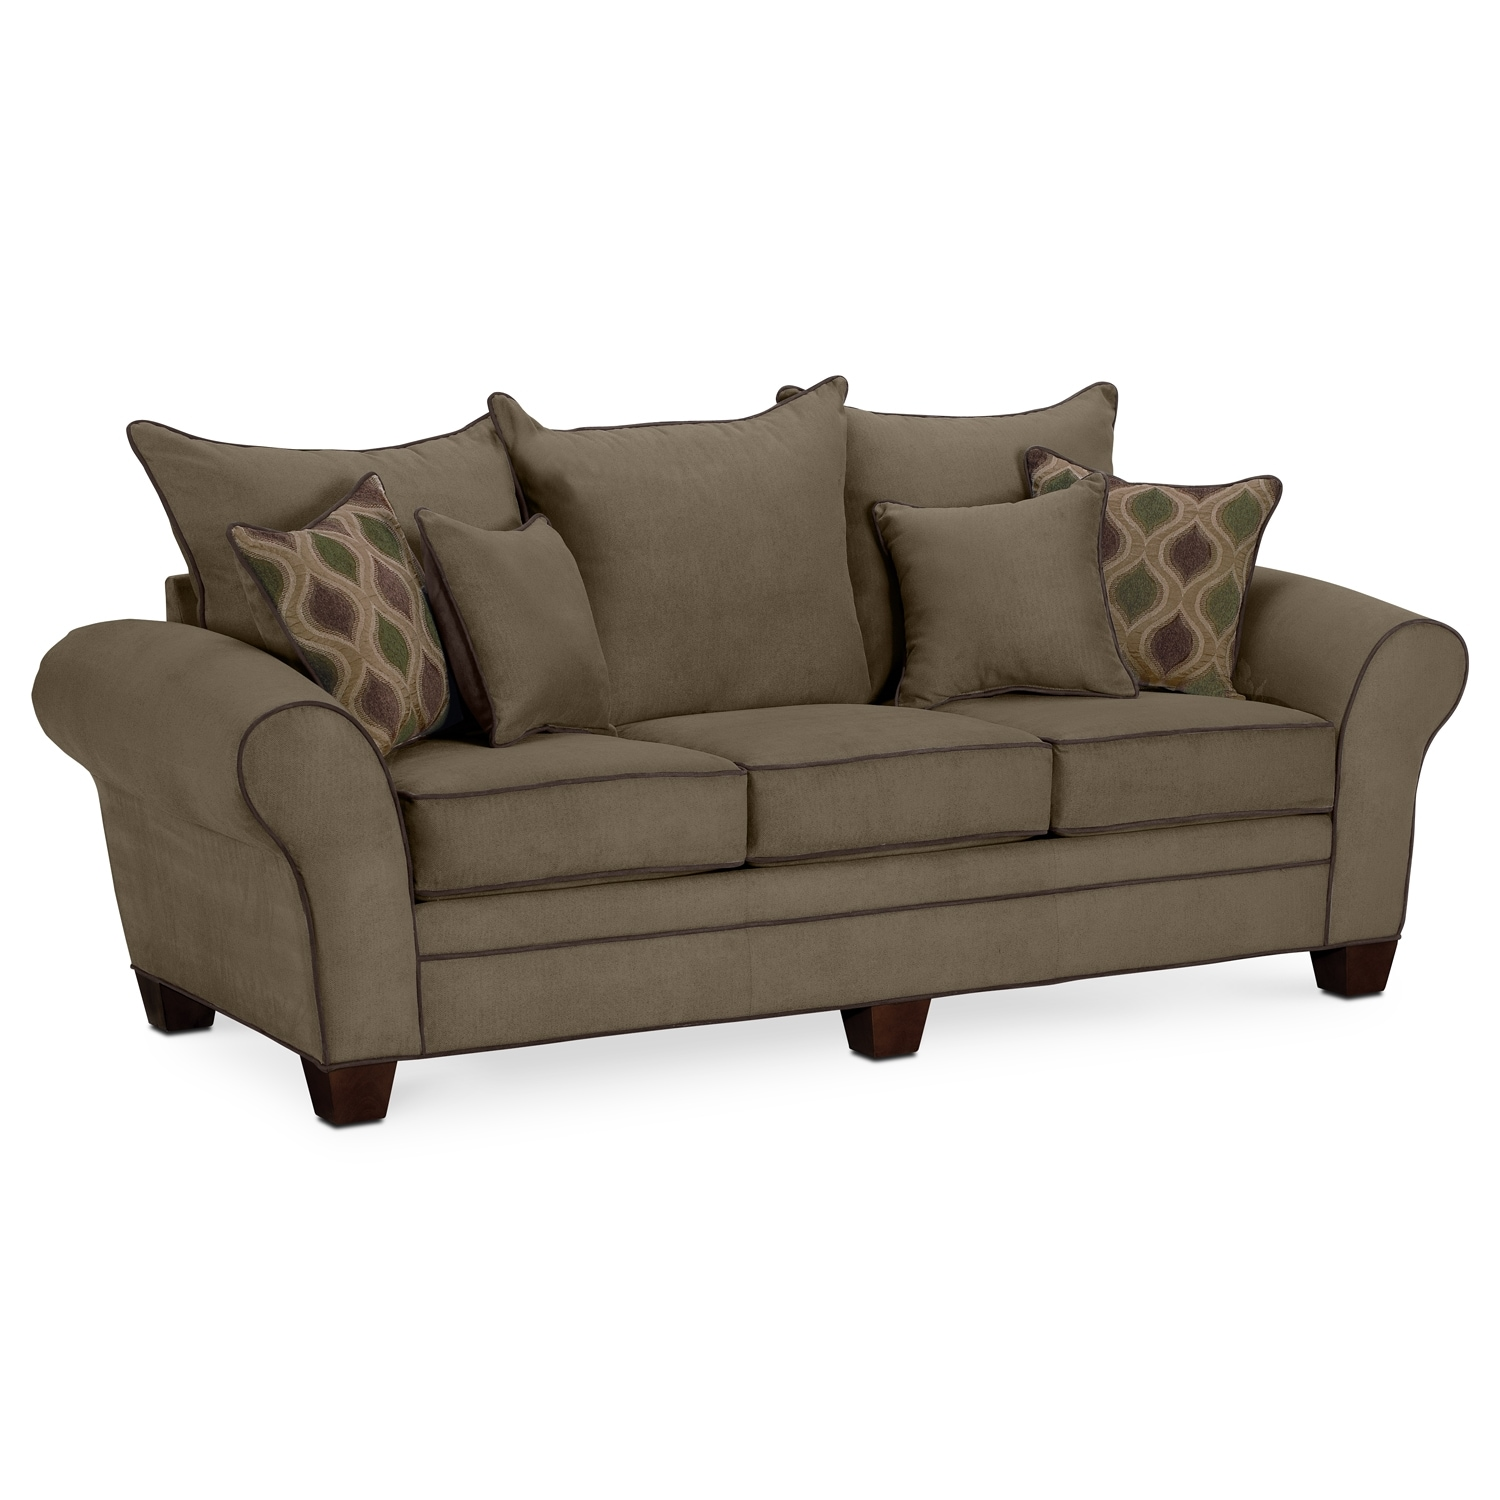 Rendezvous sofa olive value city furniture Sofa loveseat